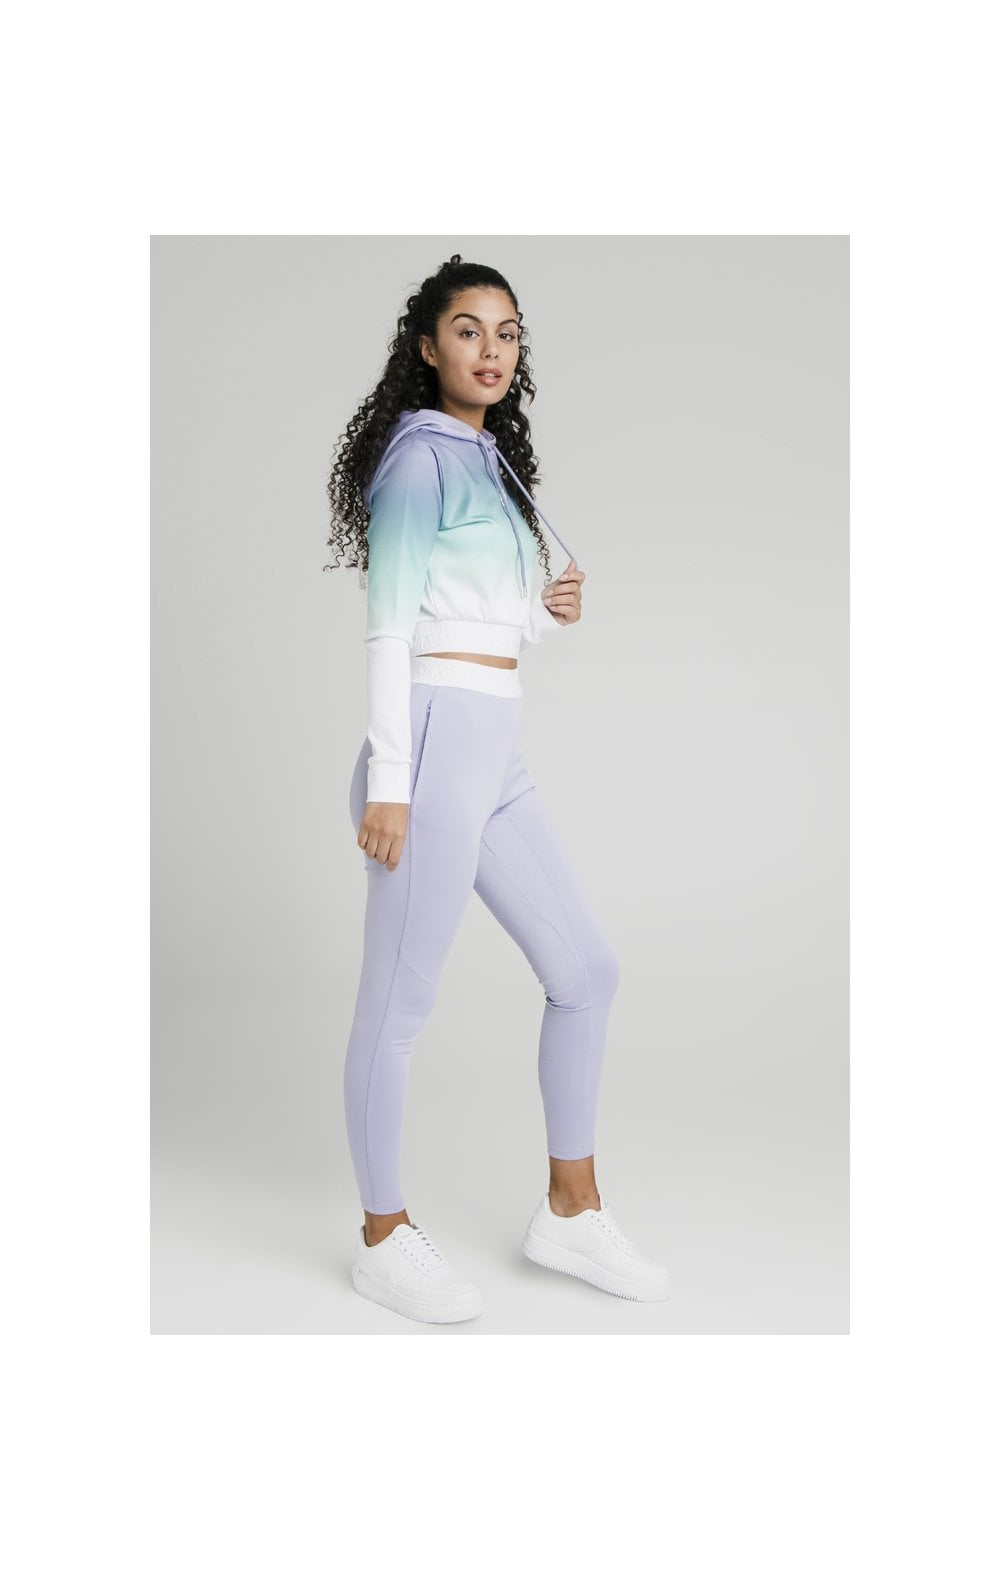 SikSilk Lilac Haze Track Top - Lilac, Turquoise & White (1)